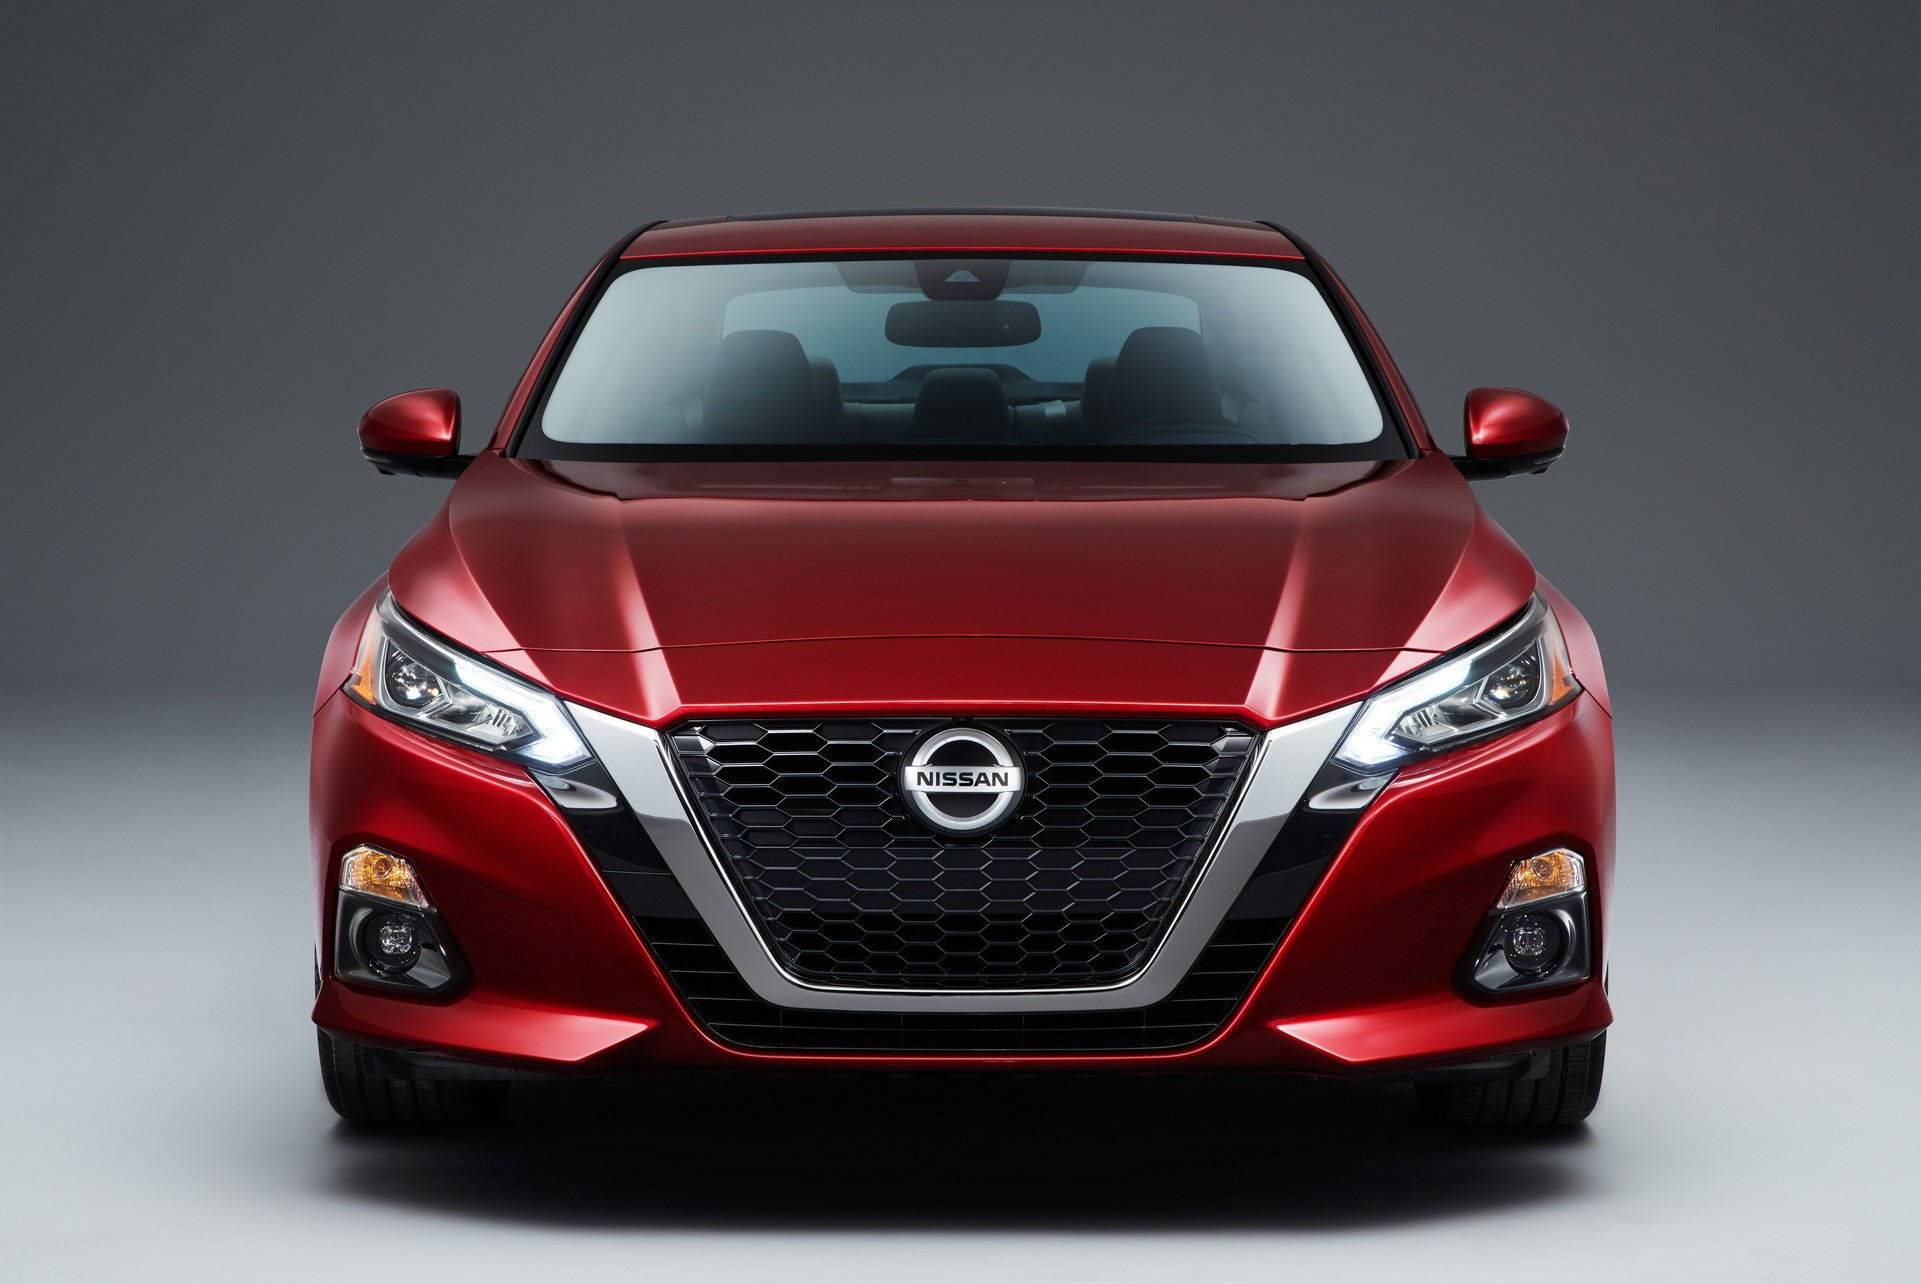 2019 nissan altima debuts in new york with 2 liter turbo and awd autoevolution. Black Bedroom Furniture Sets. Home Design Ideas